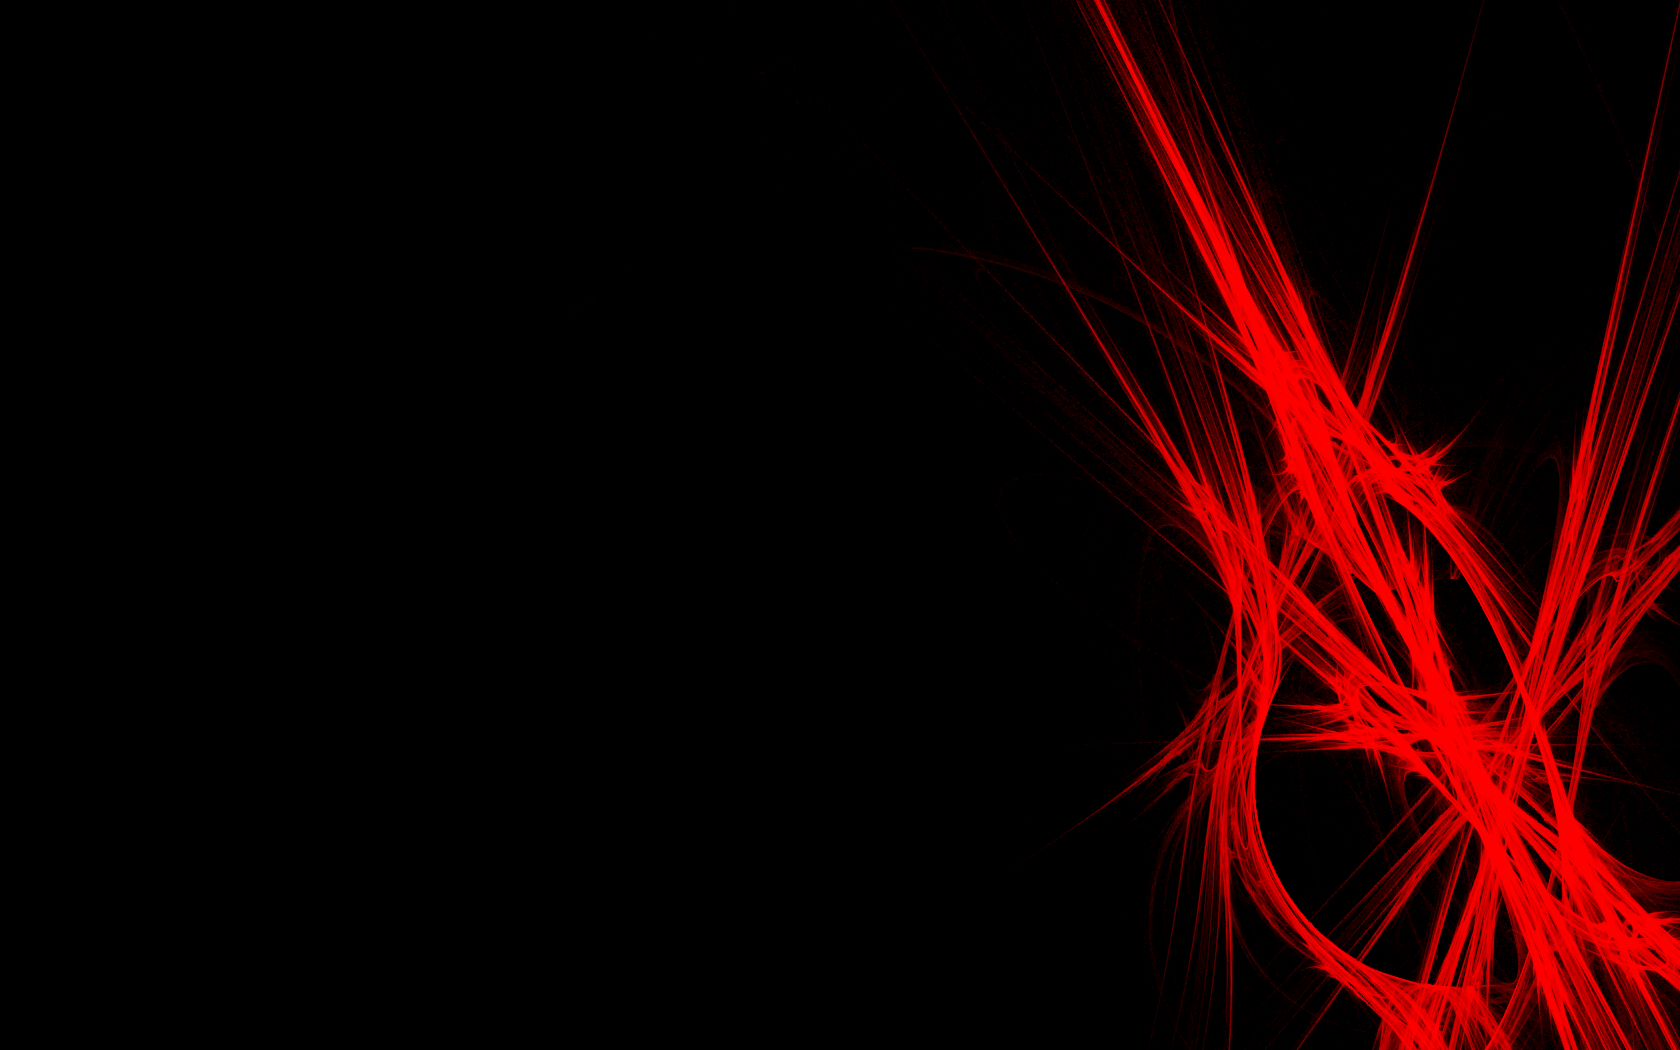 Black and Red Abstract HD Background Wallpaper 383 - Amazing